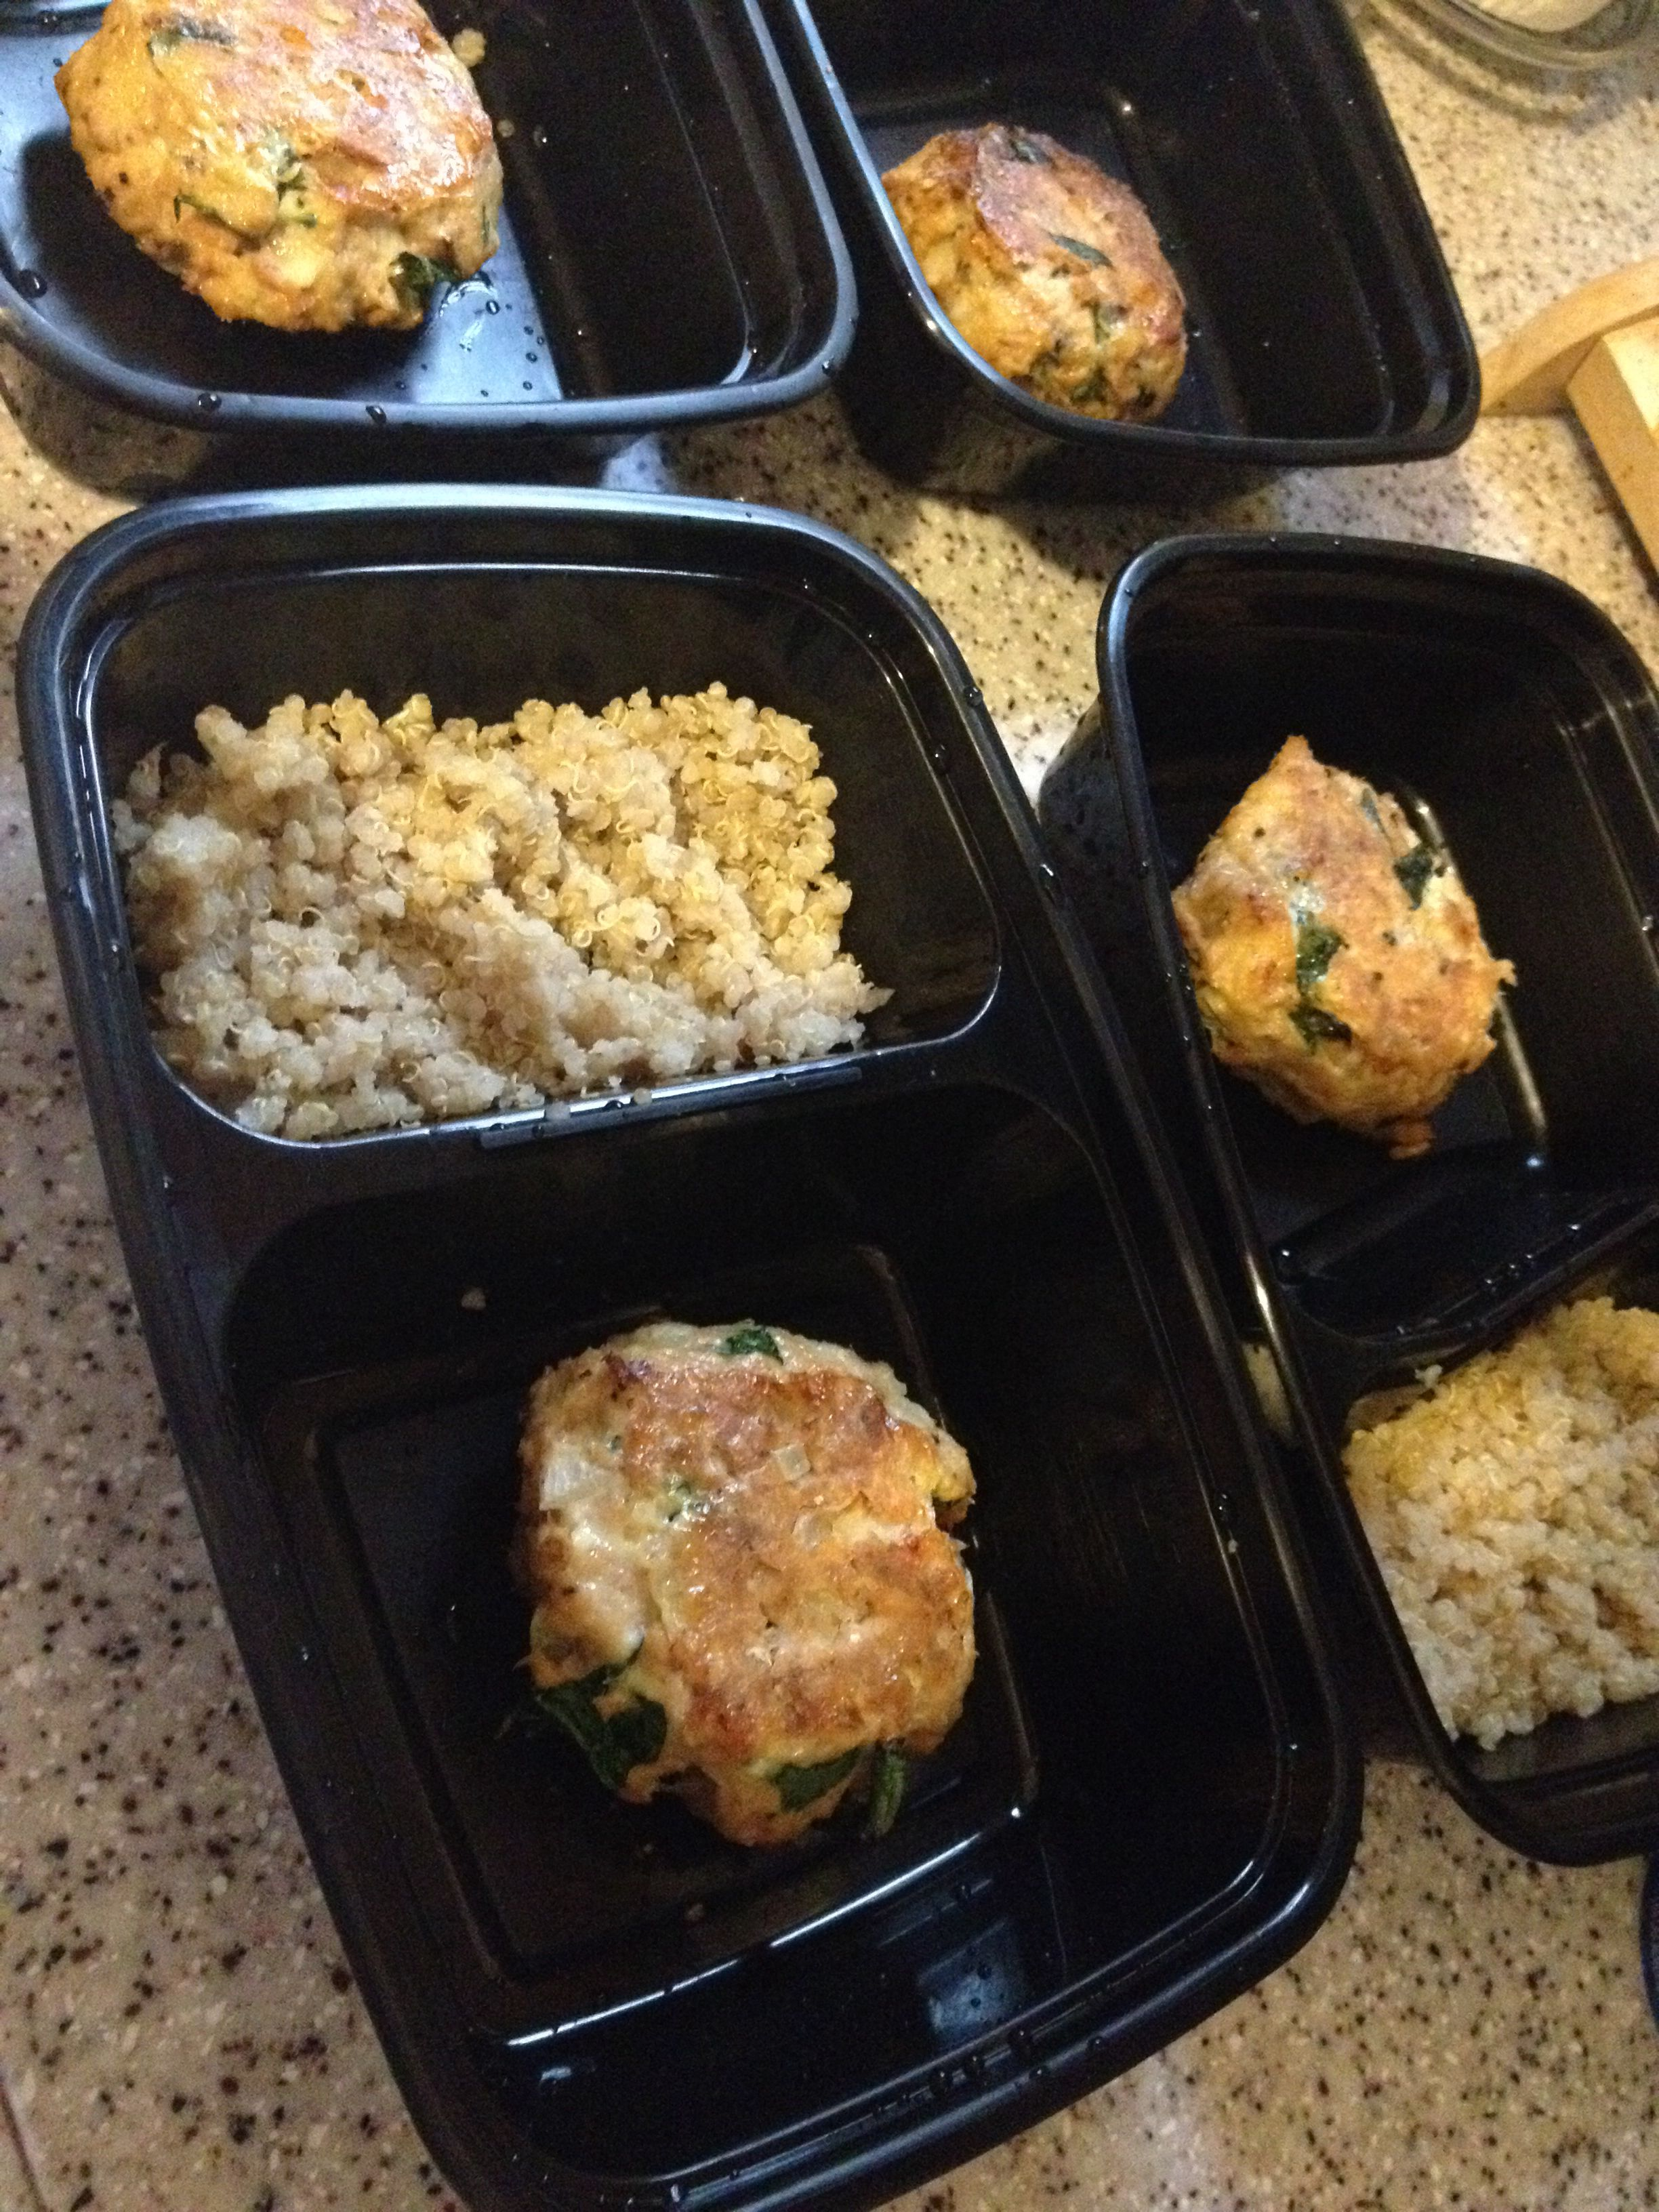 """My mommy's """"Baked not fried Salmon&Spinach Cakes"""" Preheat oven to 375. 1 can of salmon, 1 egg, 2 tbsp evoo, lemon pepper seasoning, fresh cracked black pepper, half an onion diced and a handful of chopped spinach. Spray foiled pan with evoo, mix ingredients, form cakes and place in oven. After 10 minutes, flip, and in 15 minutes viola! -- make enough for the week, some quinoa, and some veggies = lunch for the week!"""